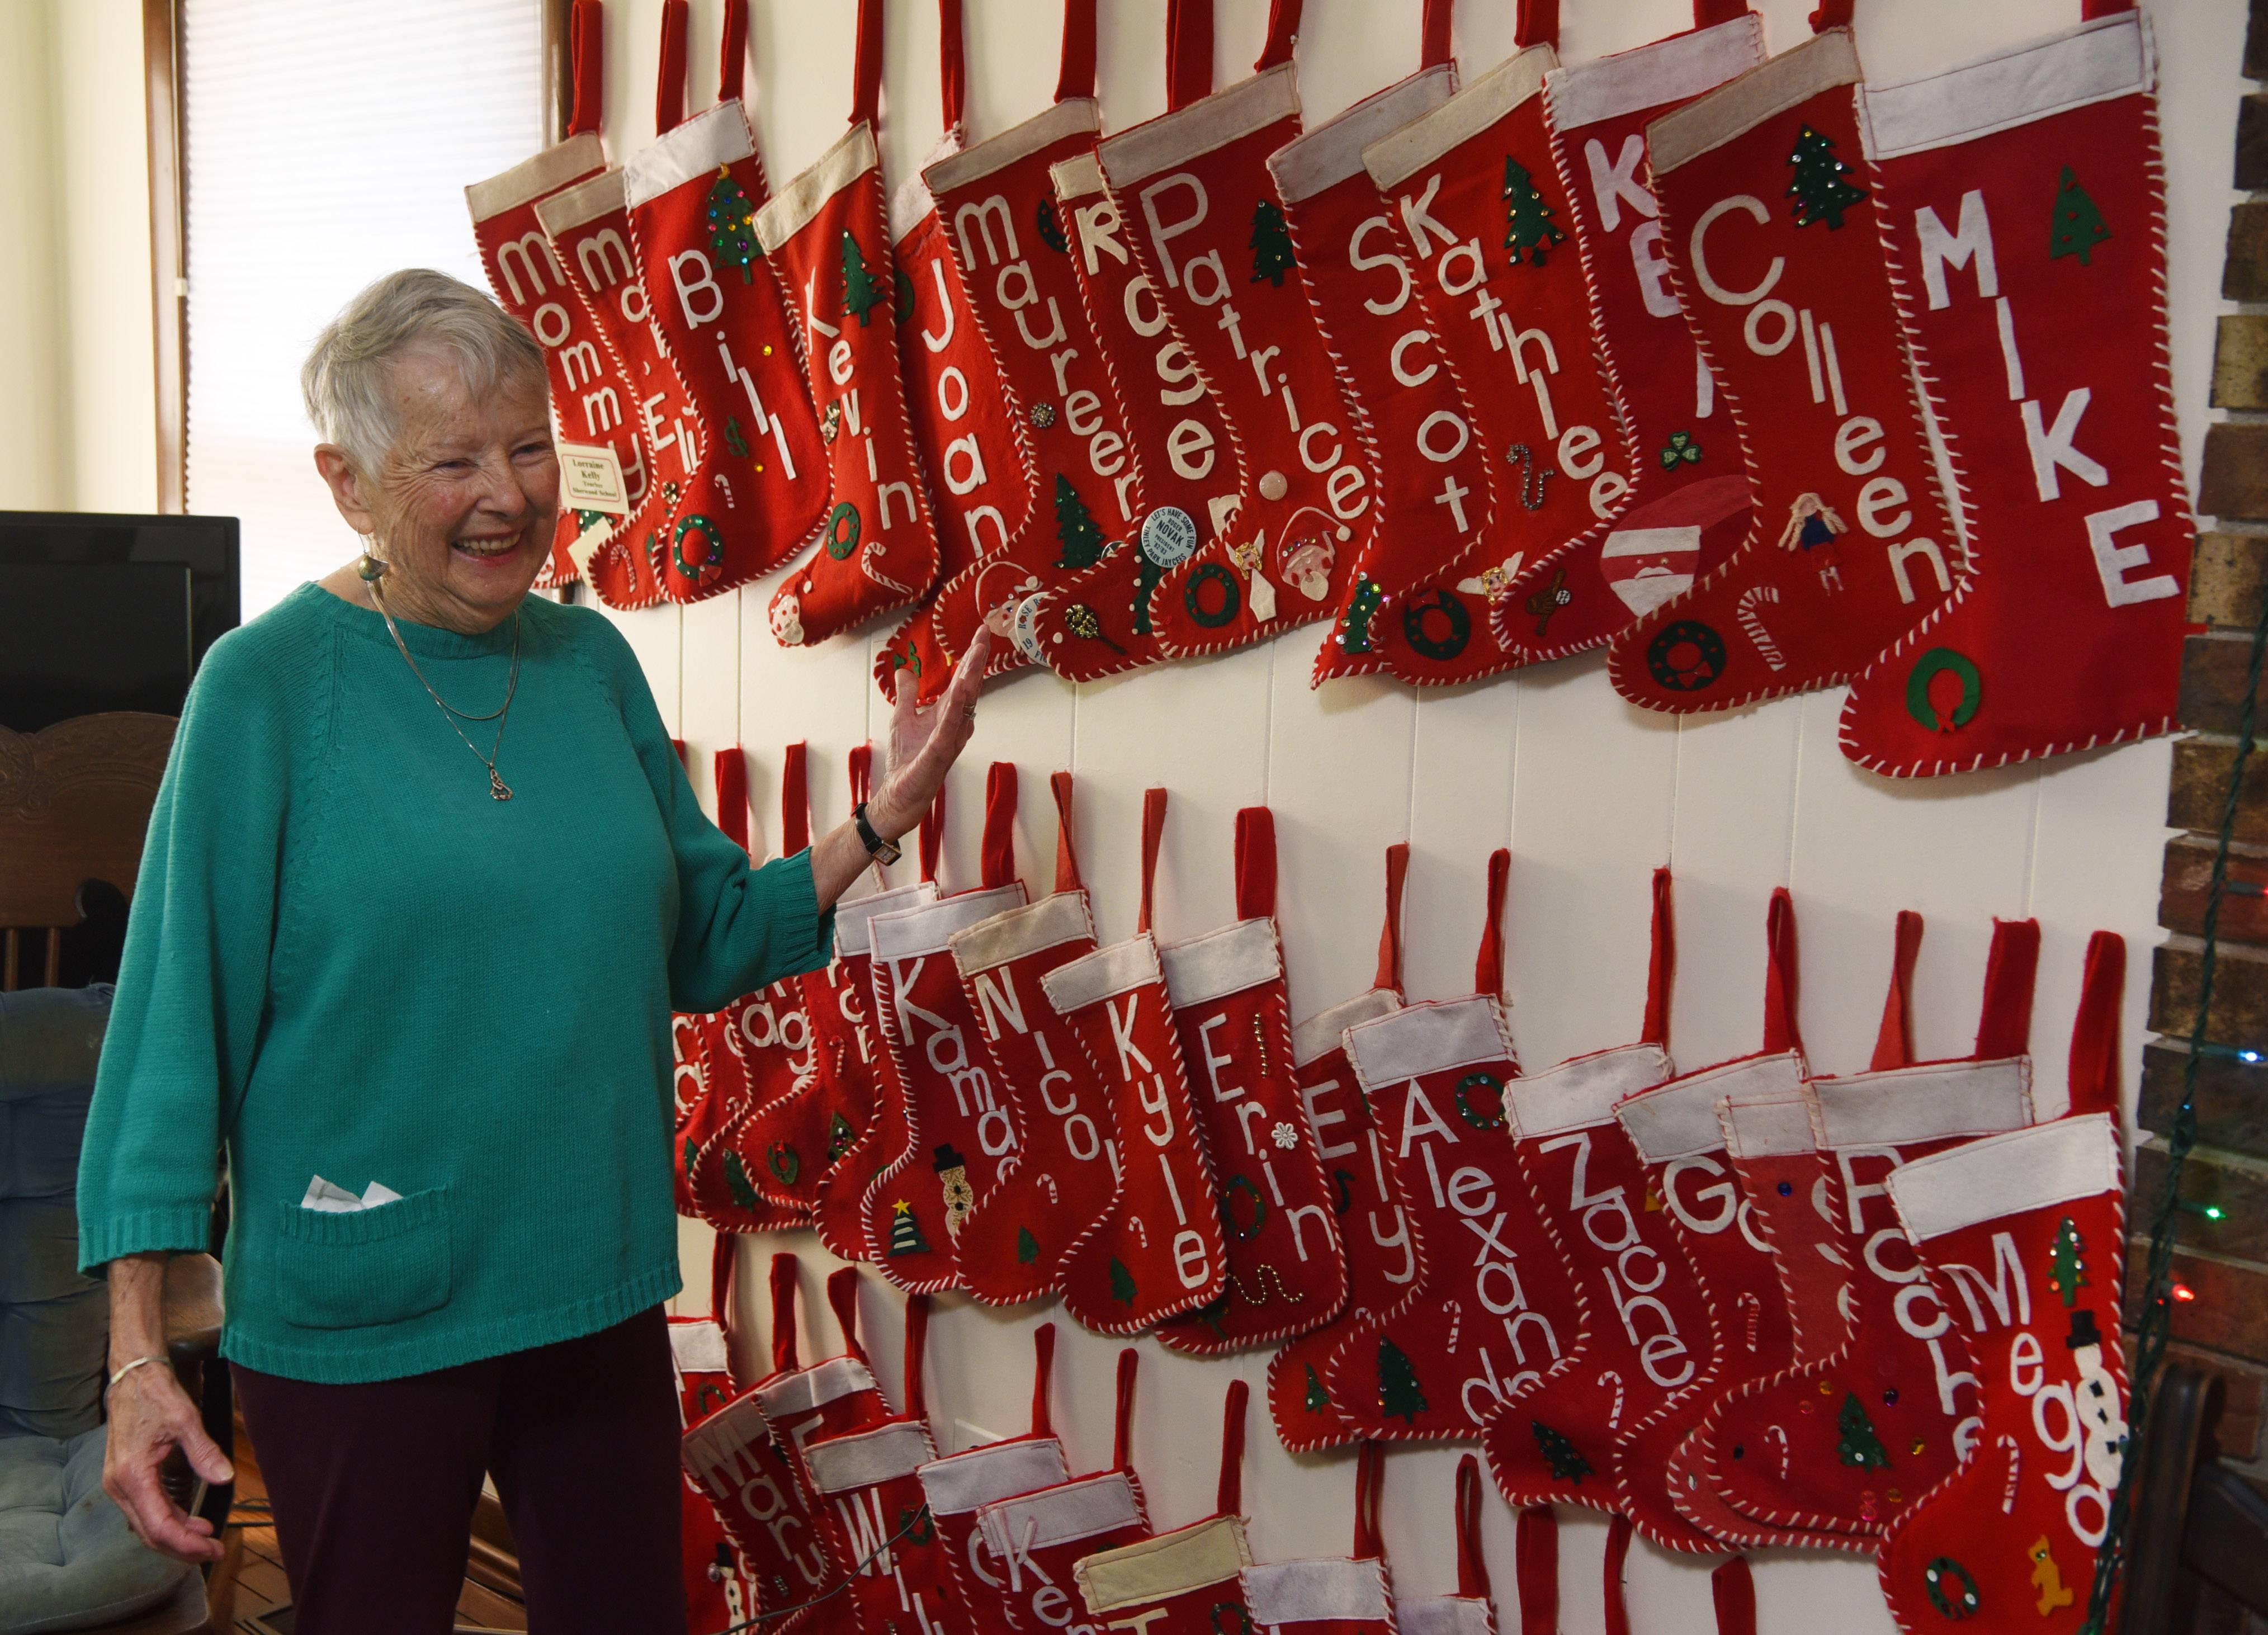 Lorraine Kelly of Arlington Heights has 73 stockings hanging in her house for each member of her extended family. The stockings have become a symbol of a beloved Christmas holiday, drawing the family together in celebration of the season and of one another.